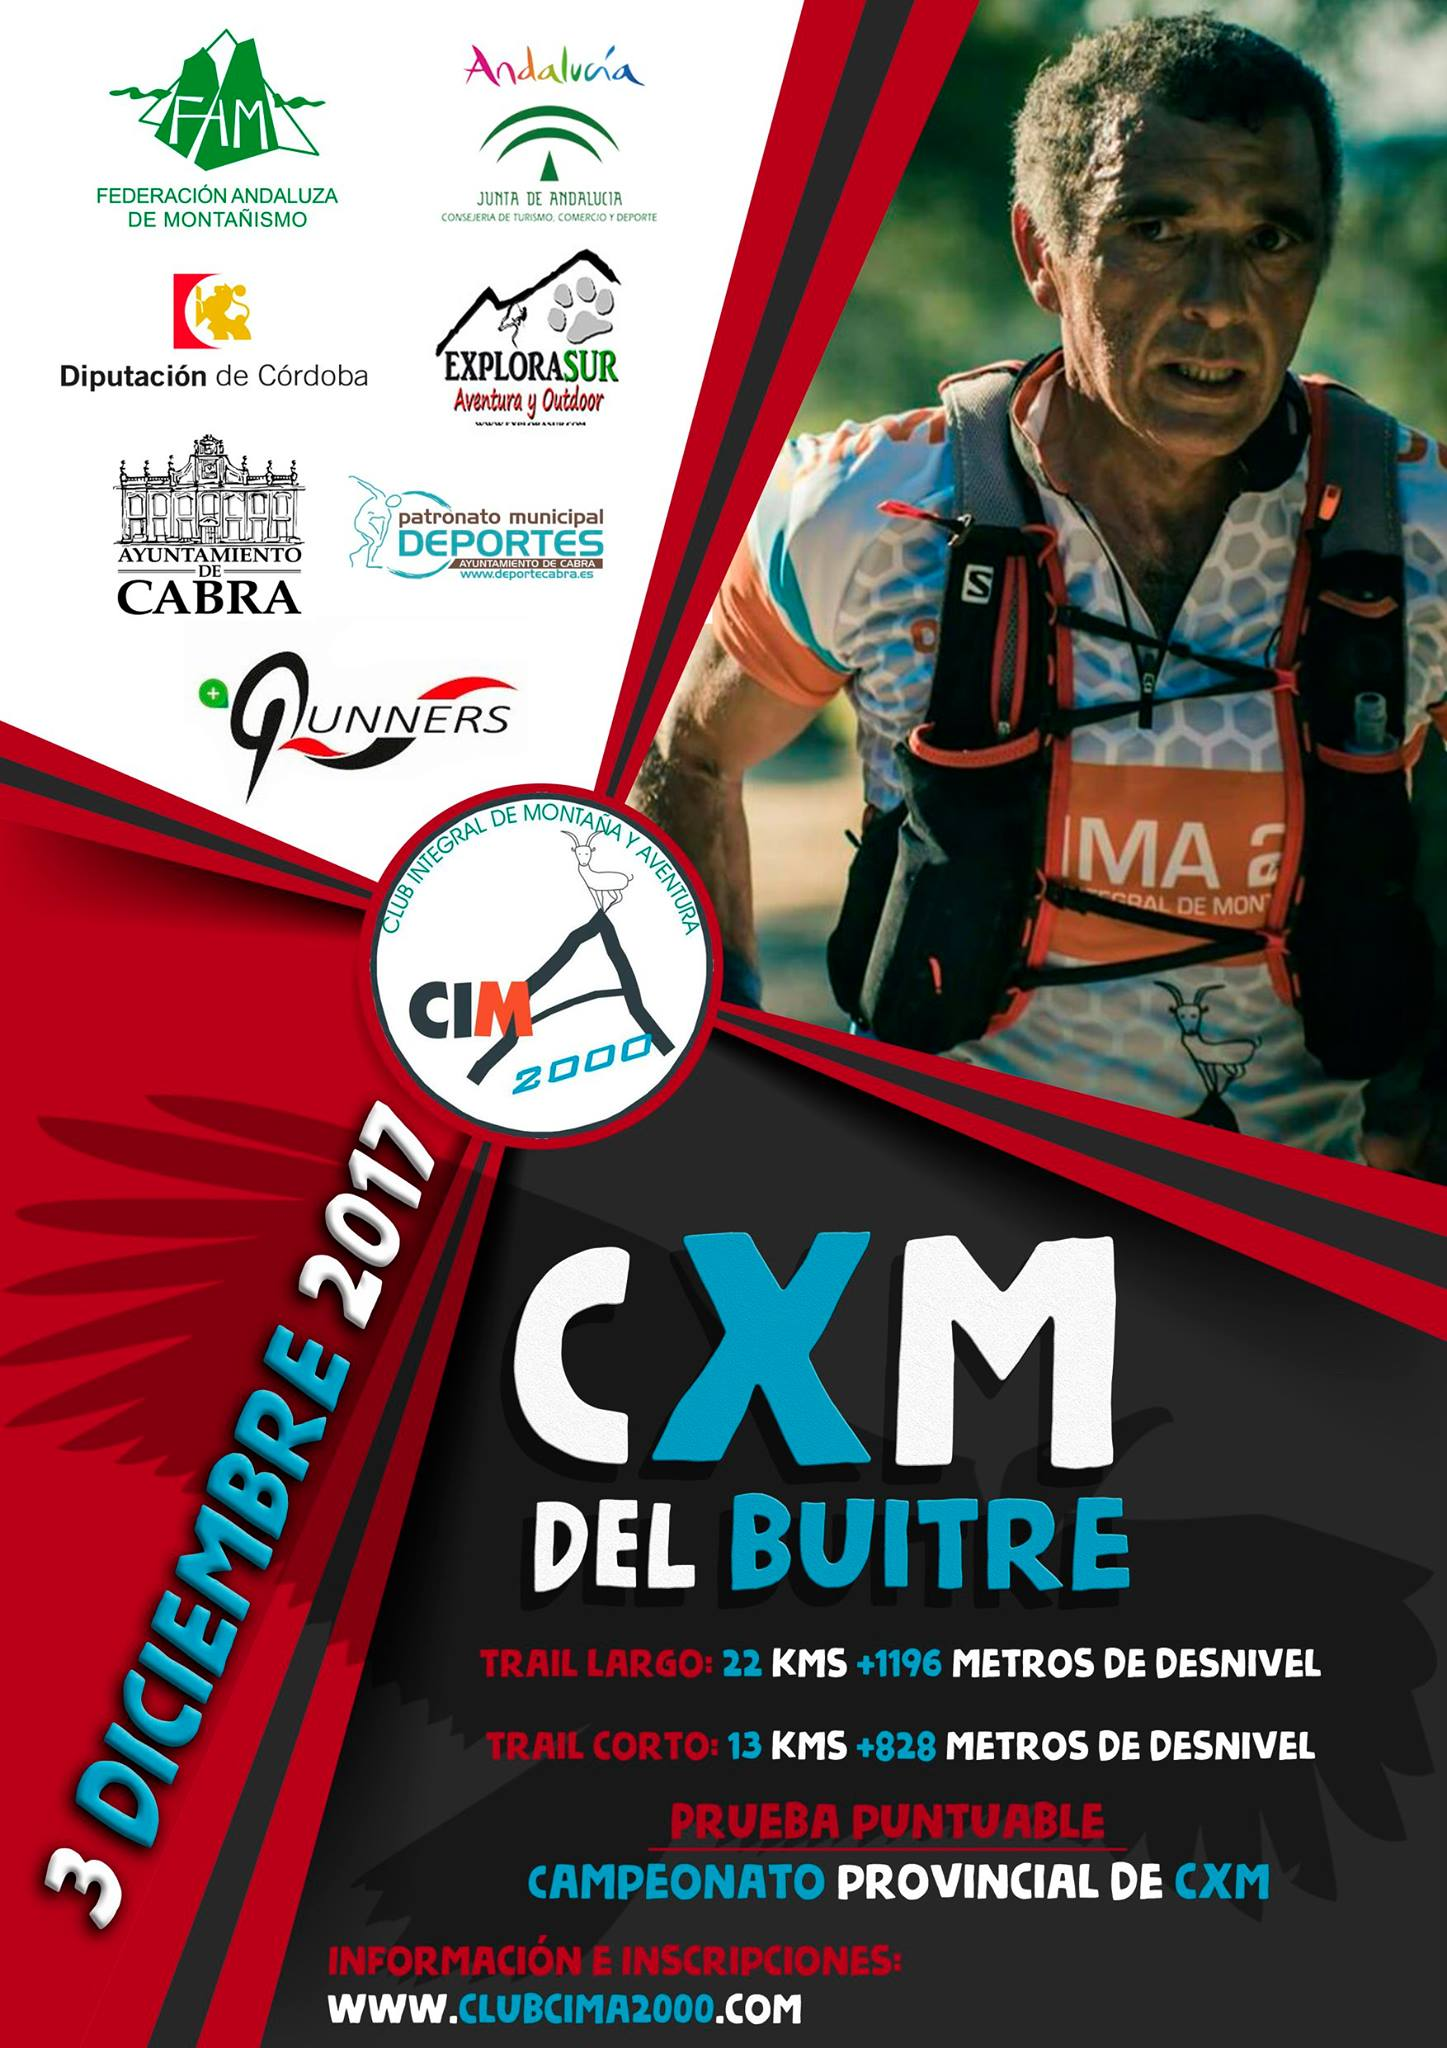 CxM del BUITRE - Trail Corto - Sprint Chip